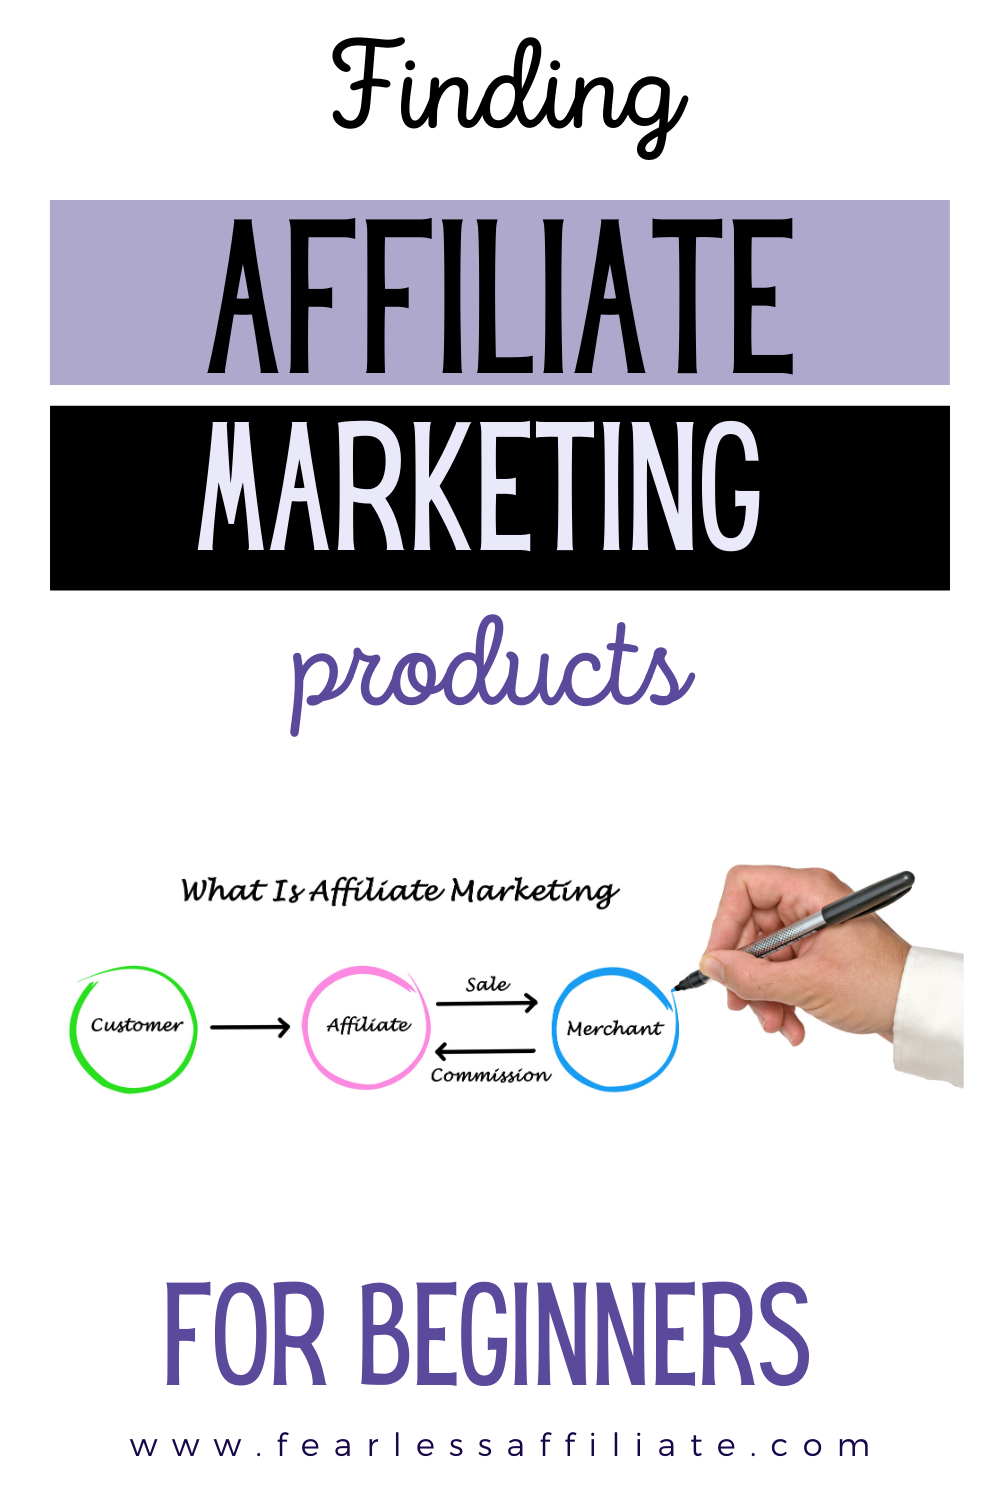 Finding Affiliate Marketing Products for Beginners